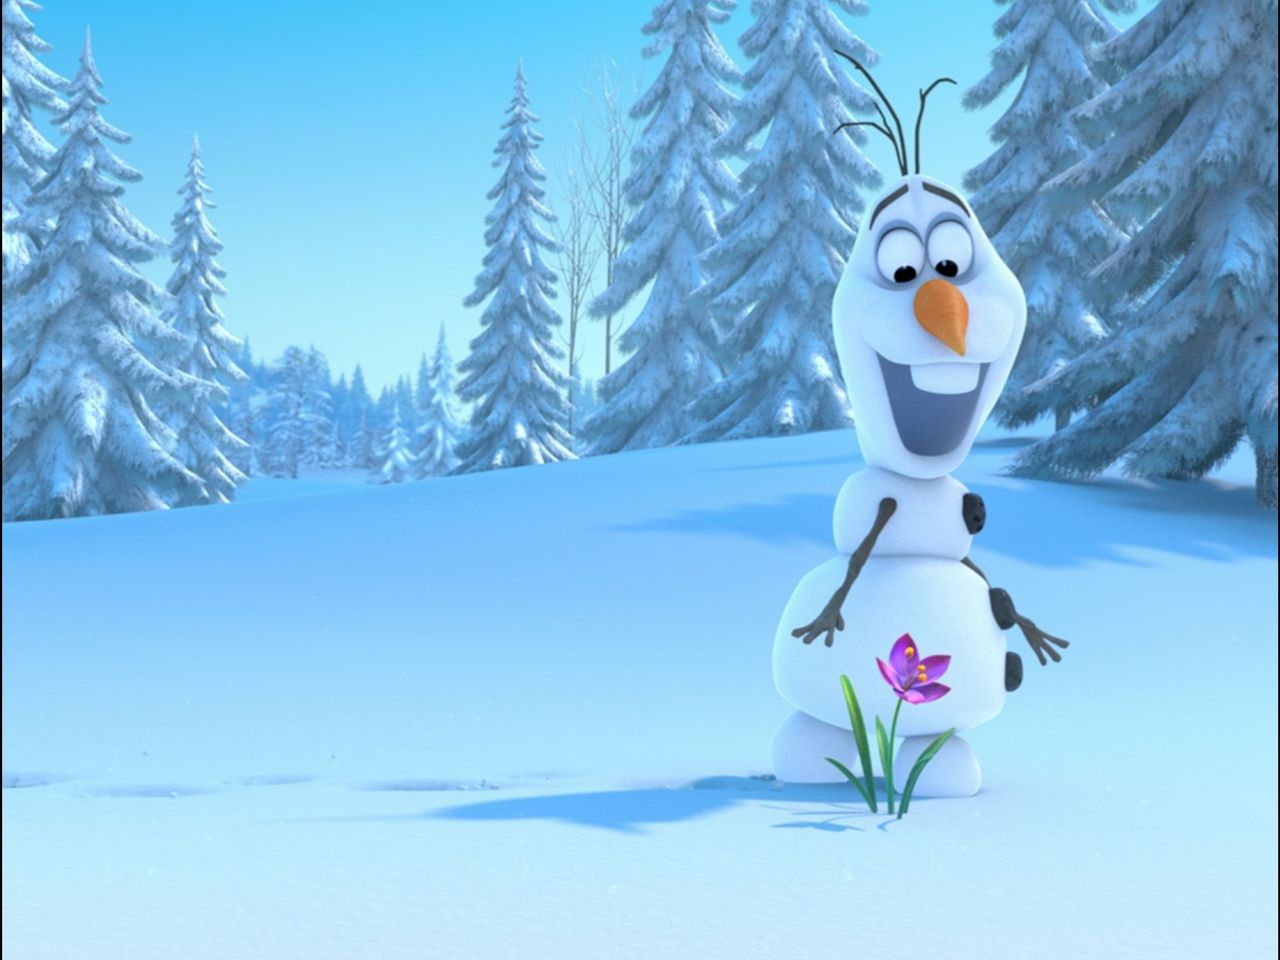 disney frozen olaf hd wallpaper image tablet